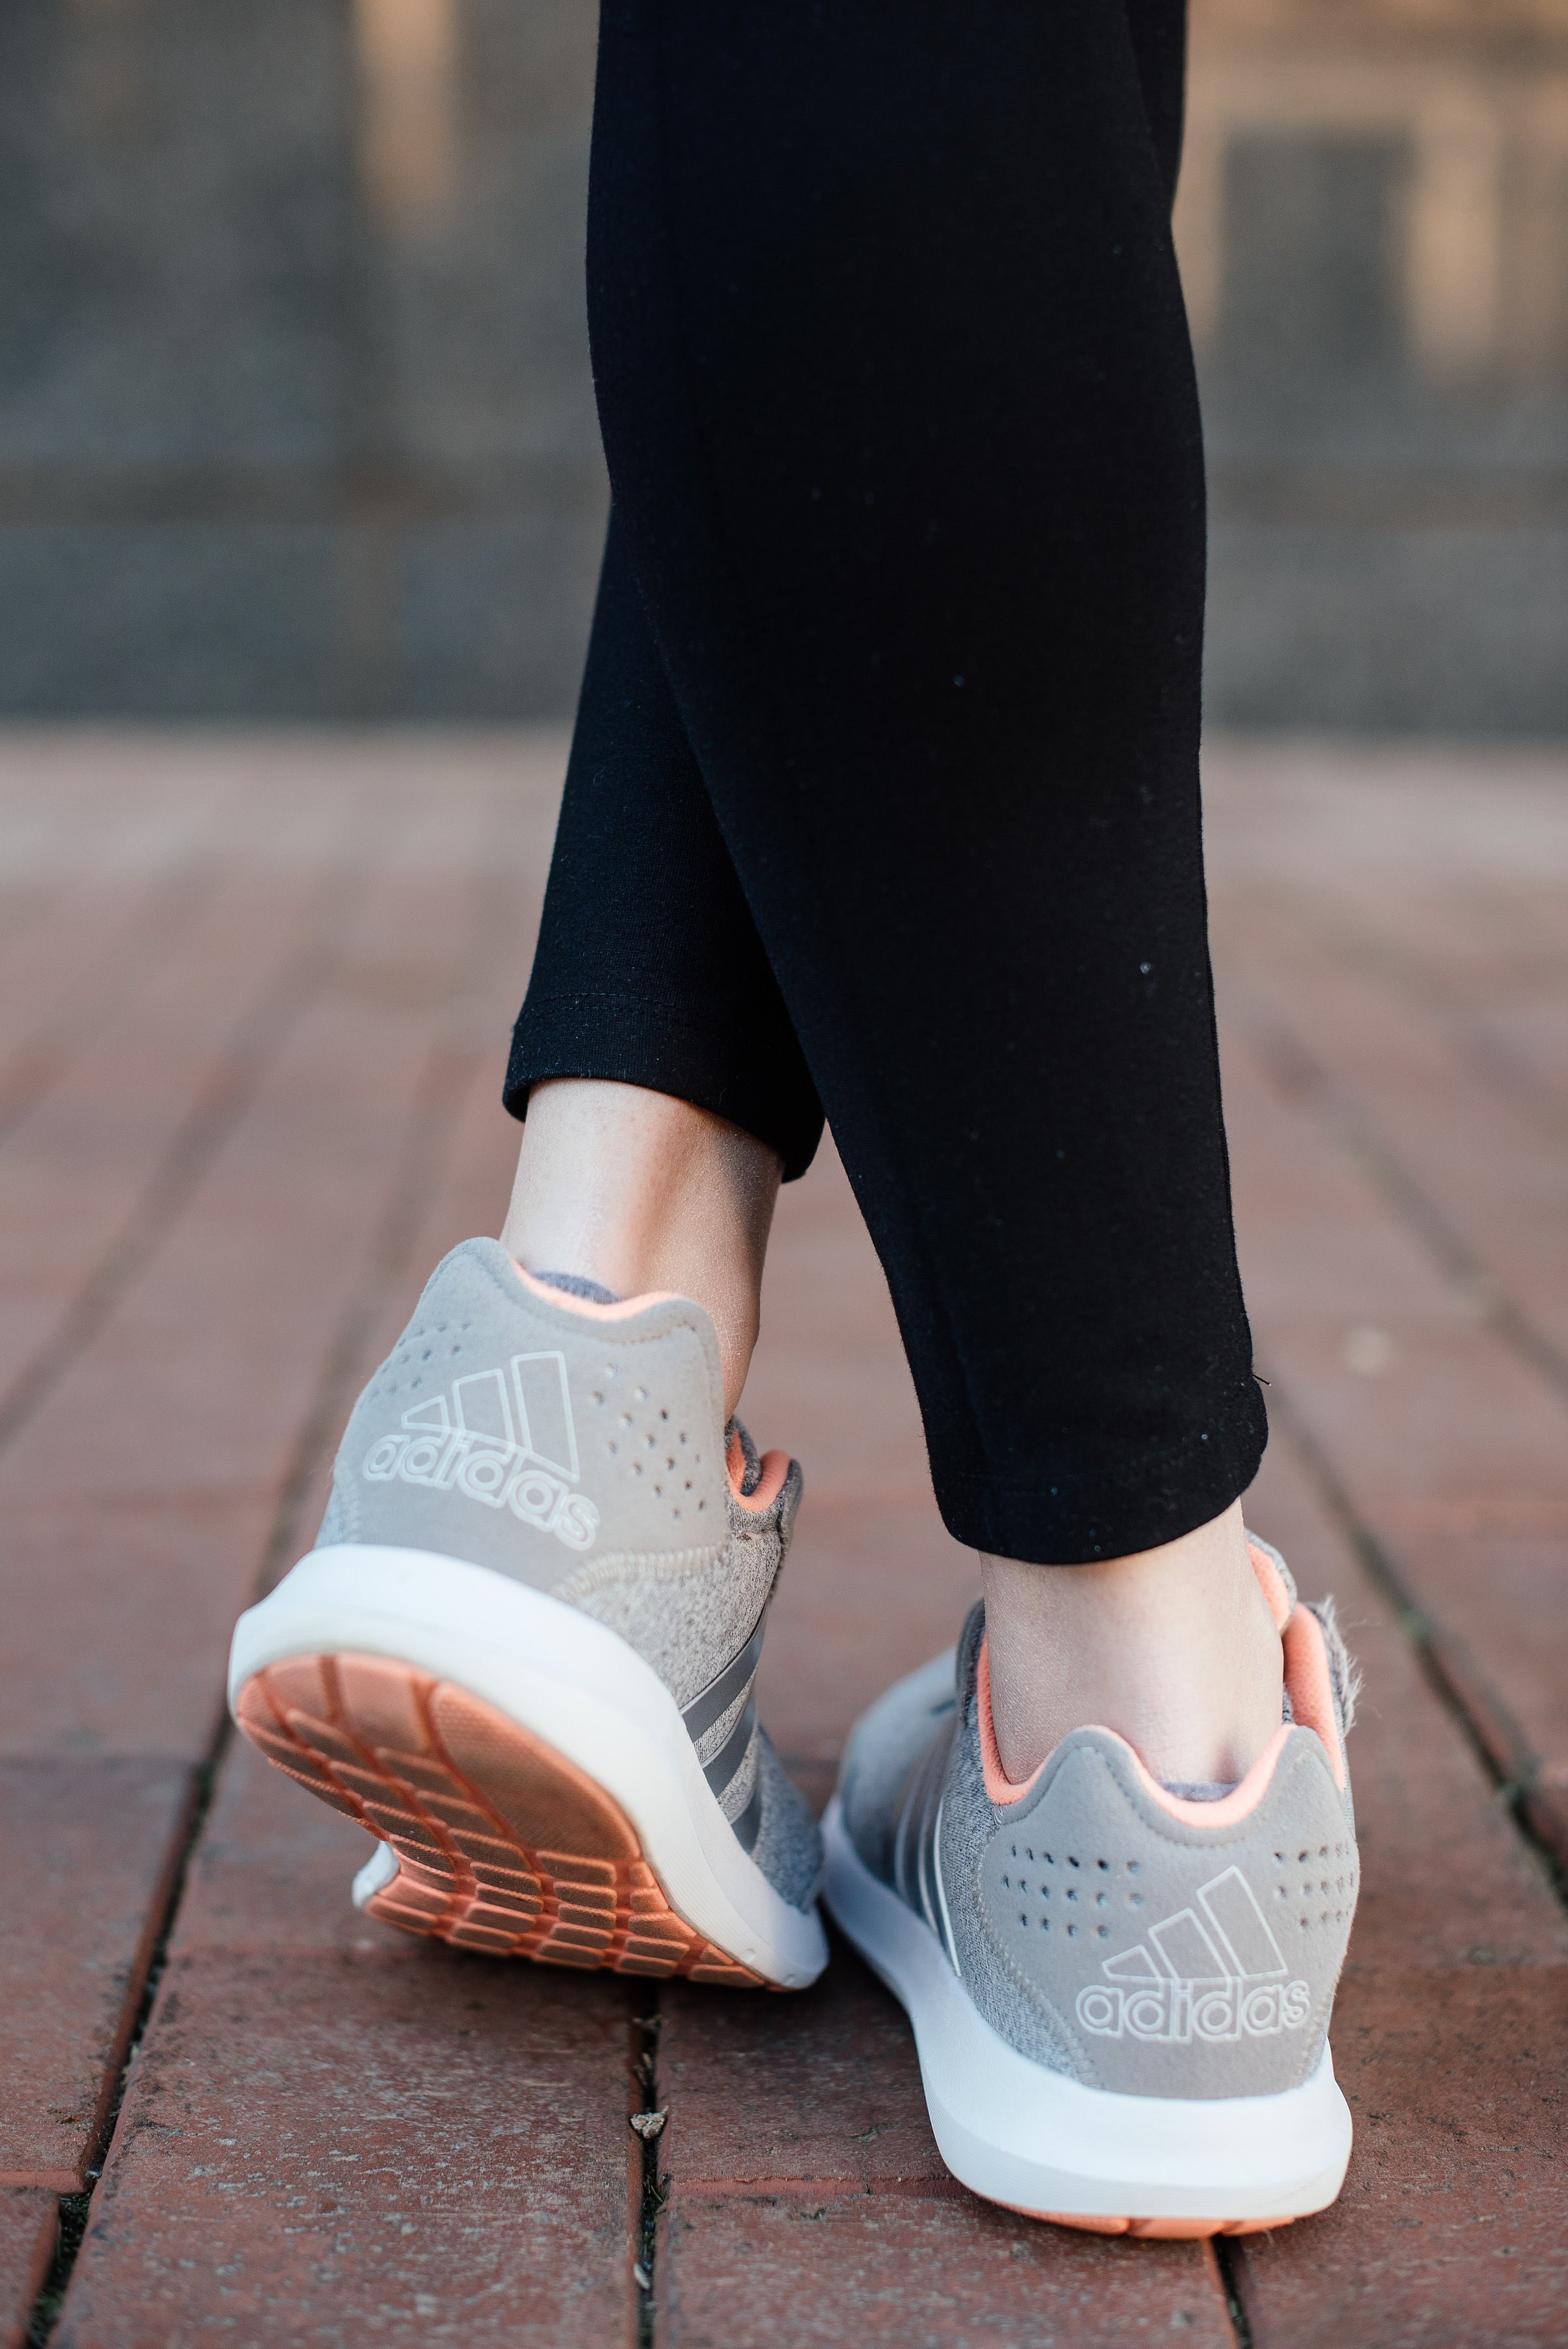 Adidas Supercloud trainers